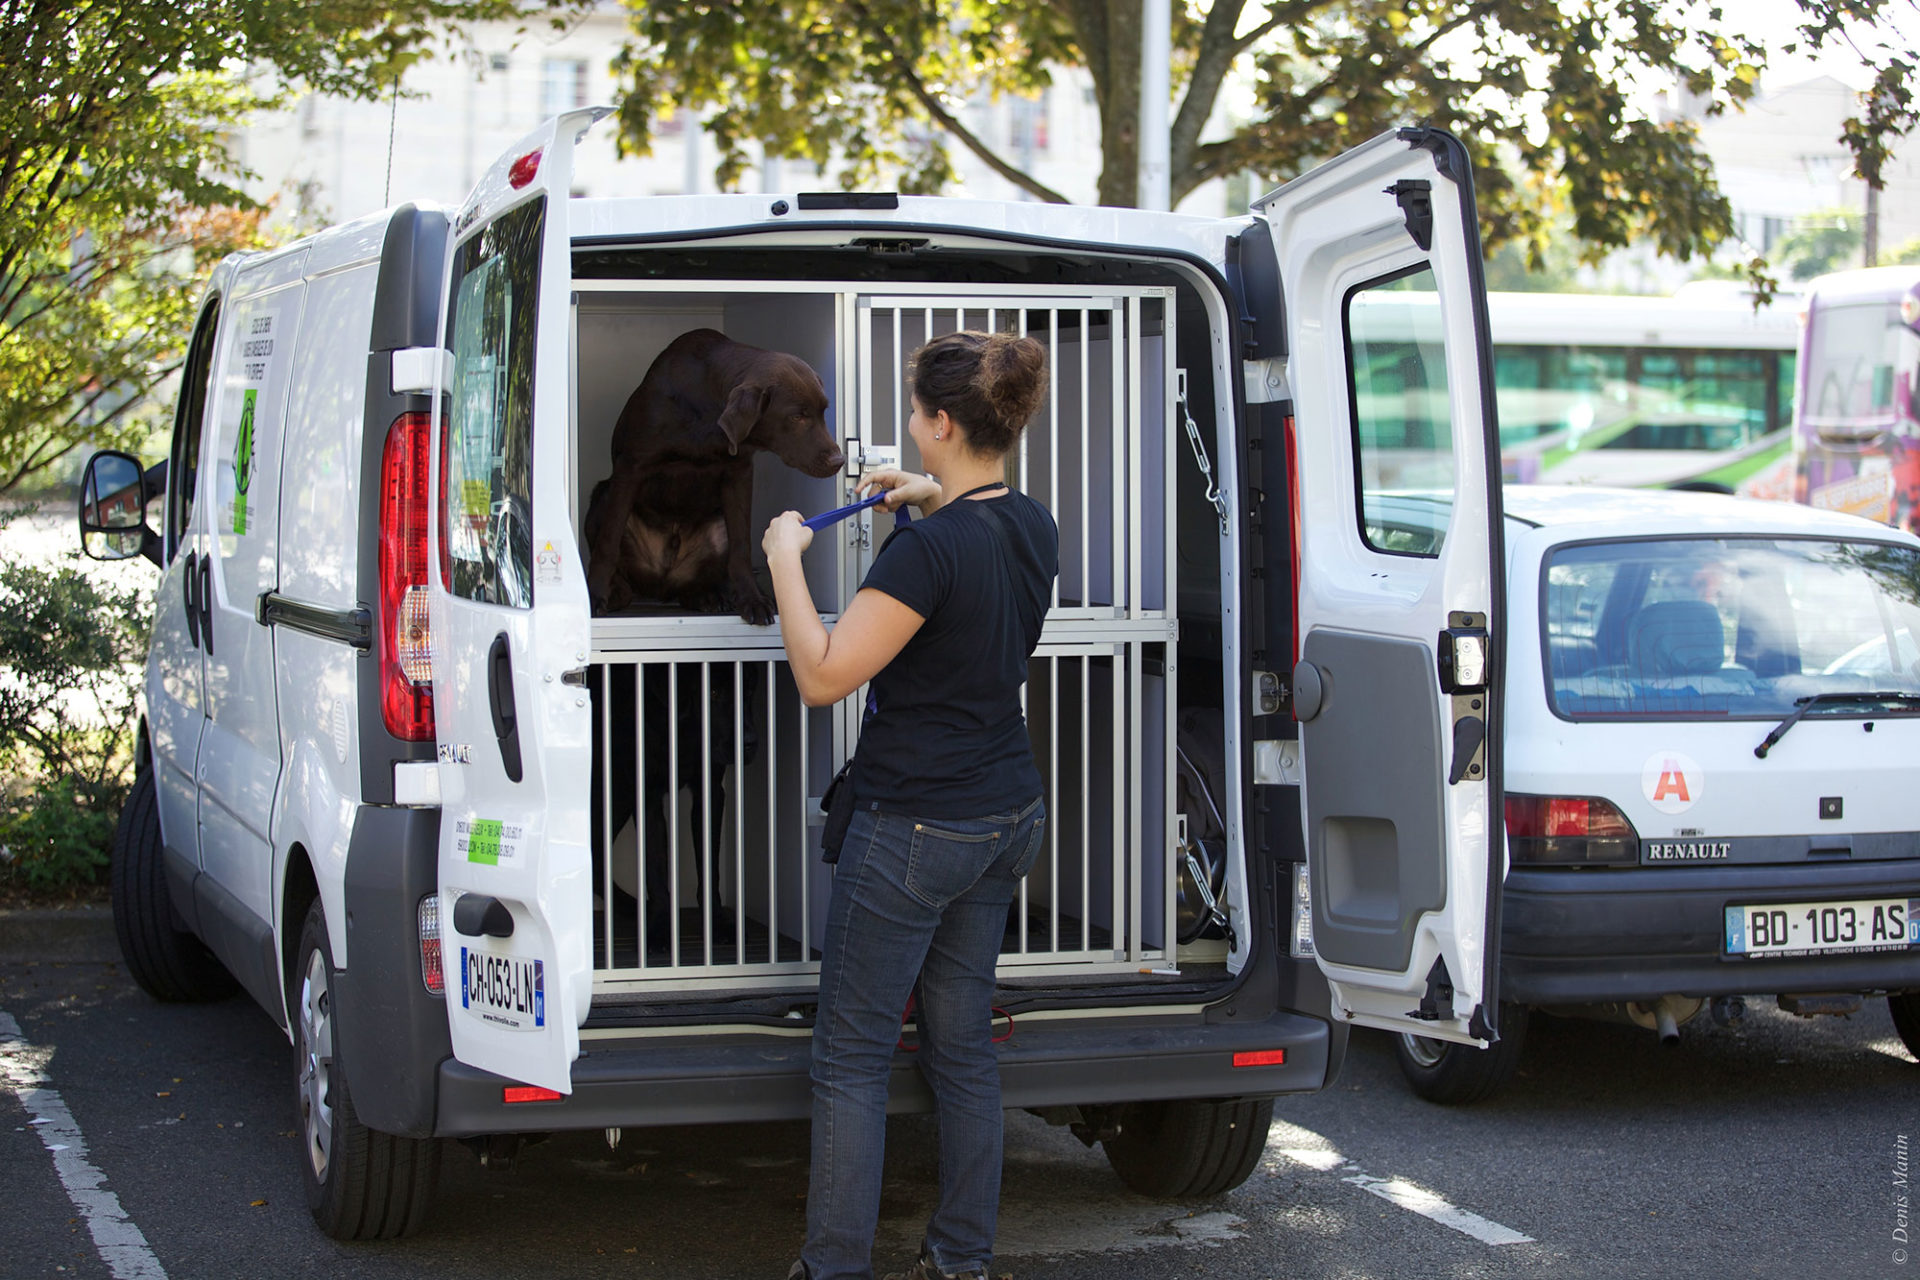 Chiens guide transport